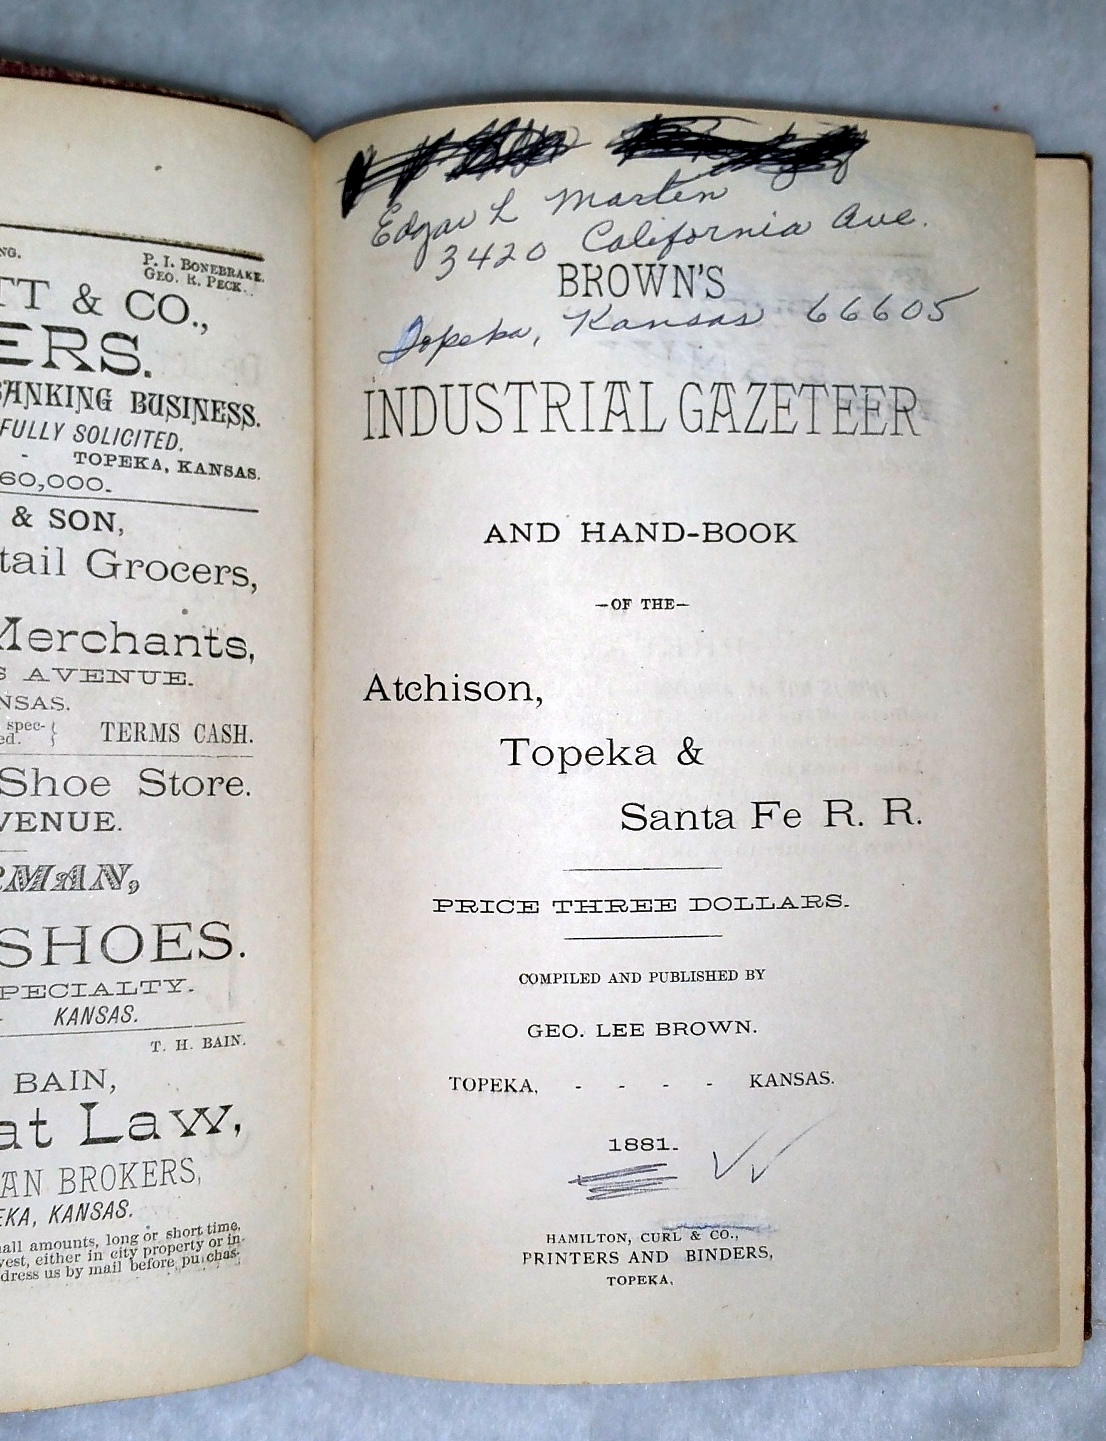 Image for Brown's Industrial Gazetteer and Hand-Book of the Atchison, Topeka & Santa Fe R. R.